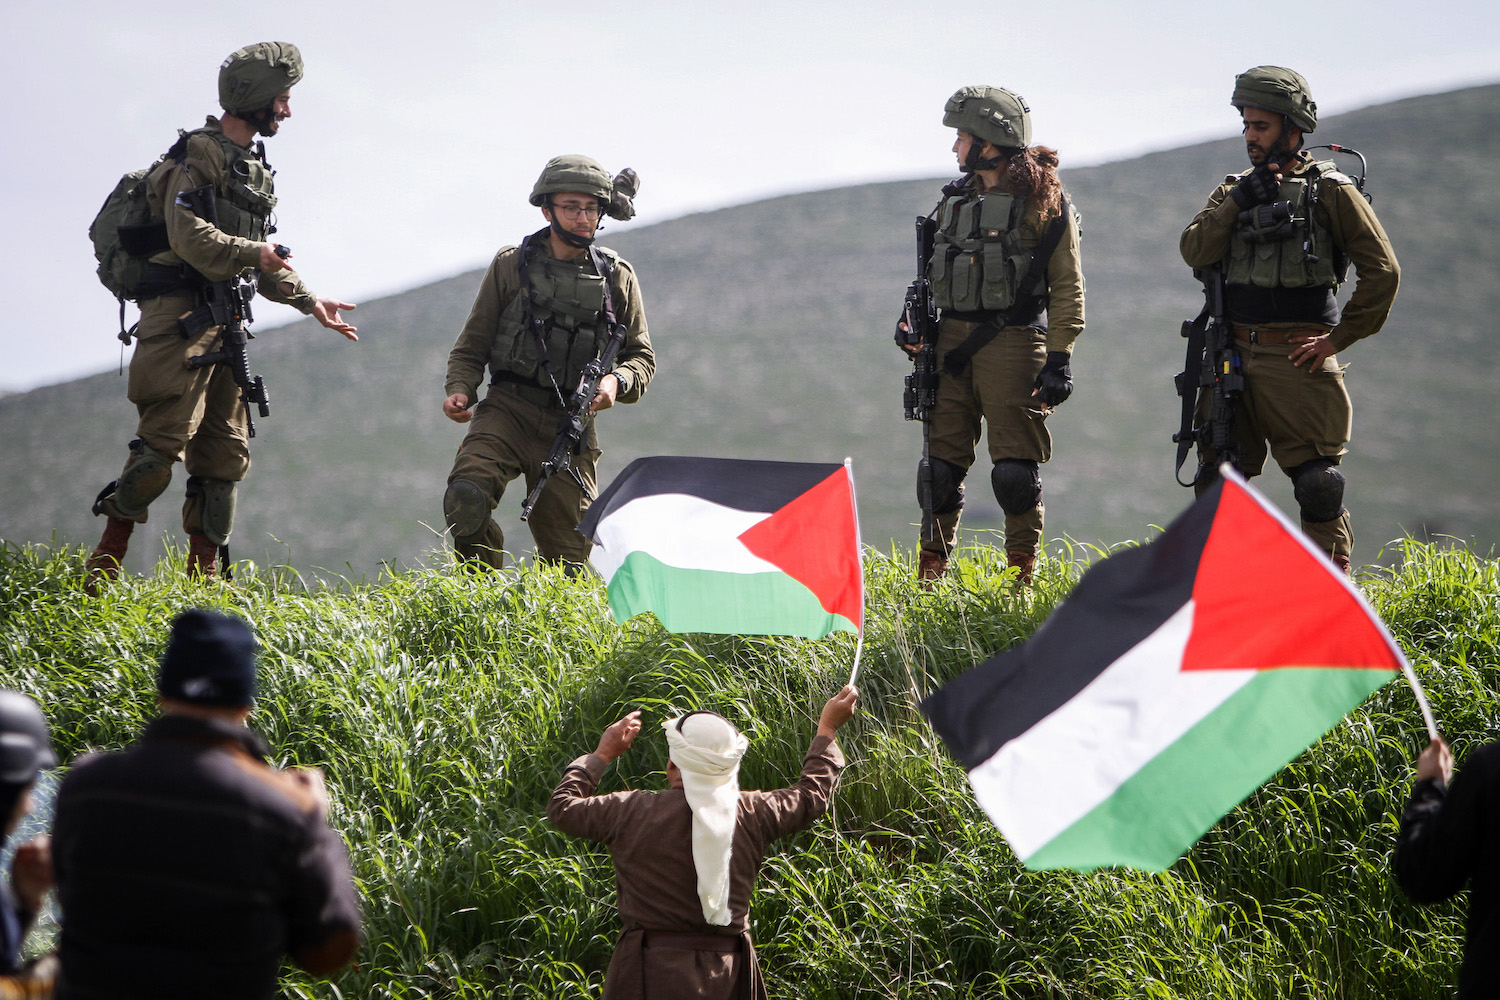 Israeli security forces clash with Palestinian demonstrators protesting President Trump's Middle East peace plan, near a settlement Beqa'ot, Jordan Valley, West Bank, February 29, 2020. (Nasser Ishtayeh/Flash90)